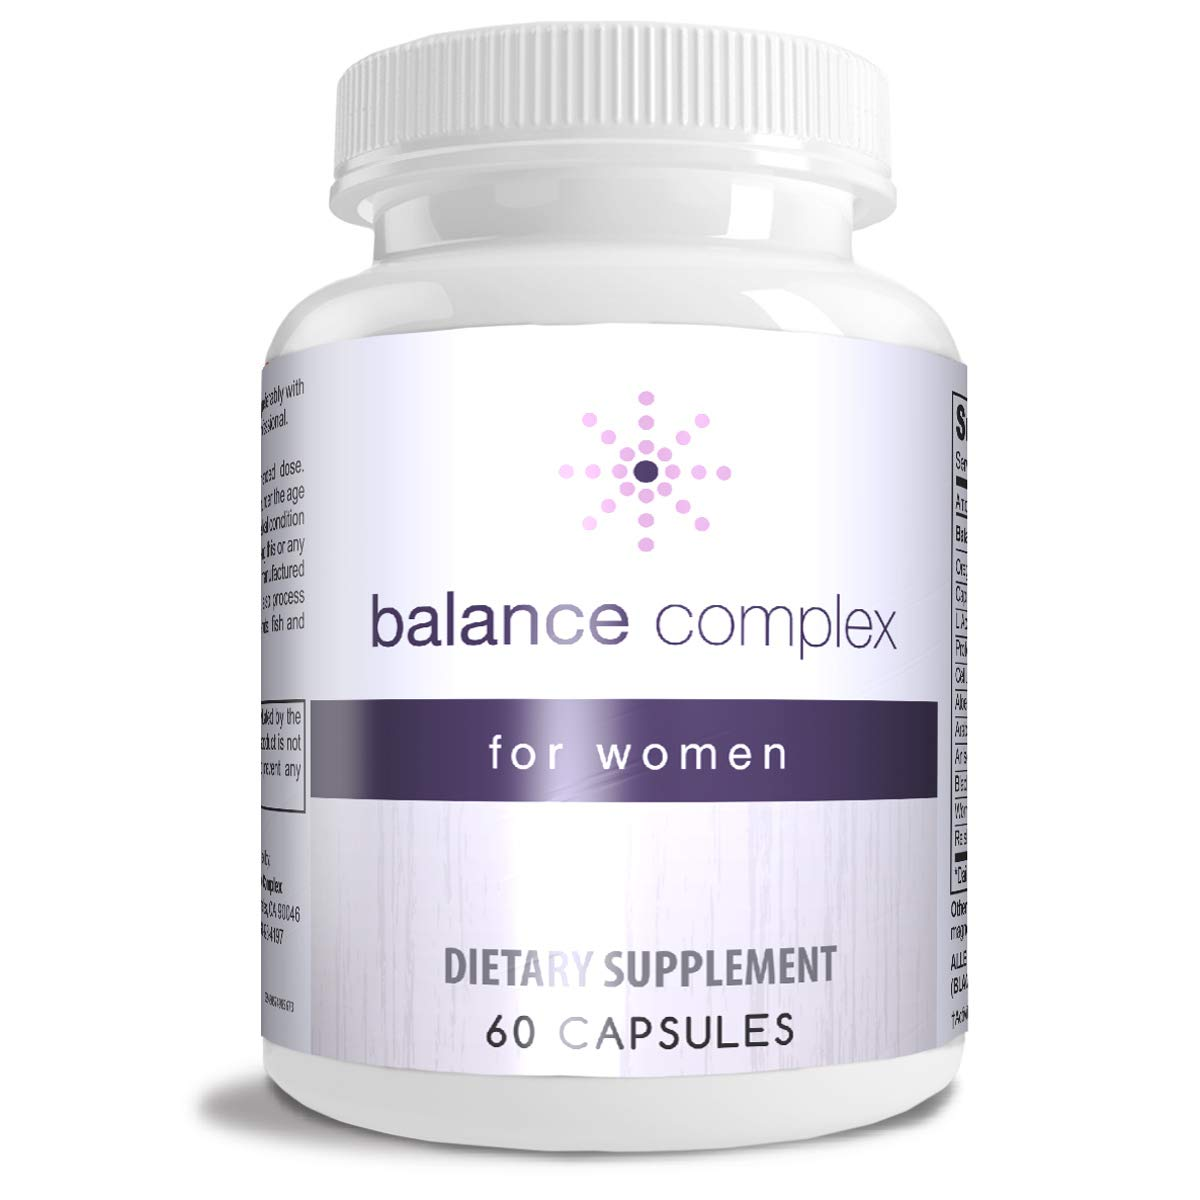 Balance Complex Vaginal Health Dietary Supplement, 60 Capsules by Instant Brands